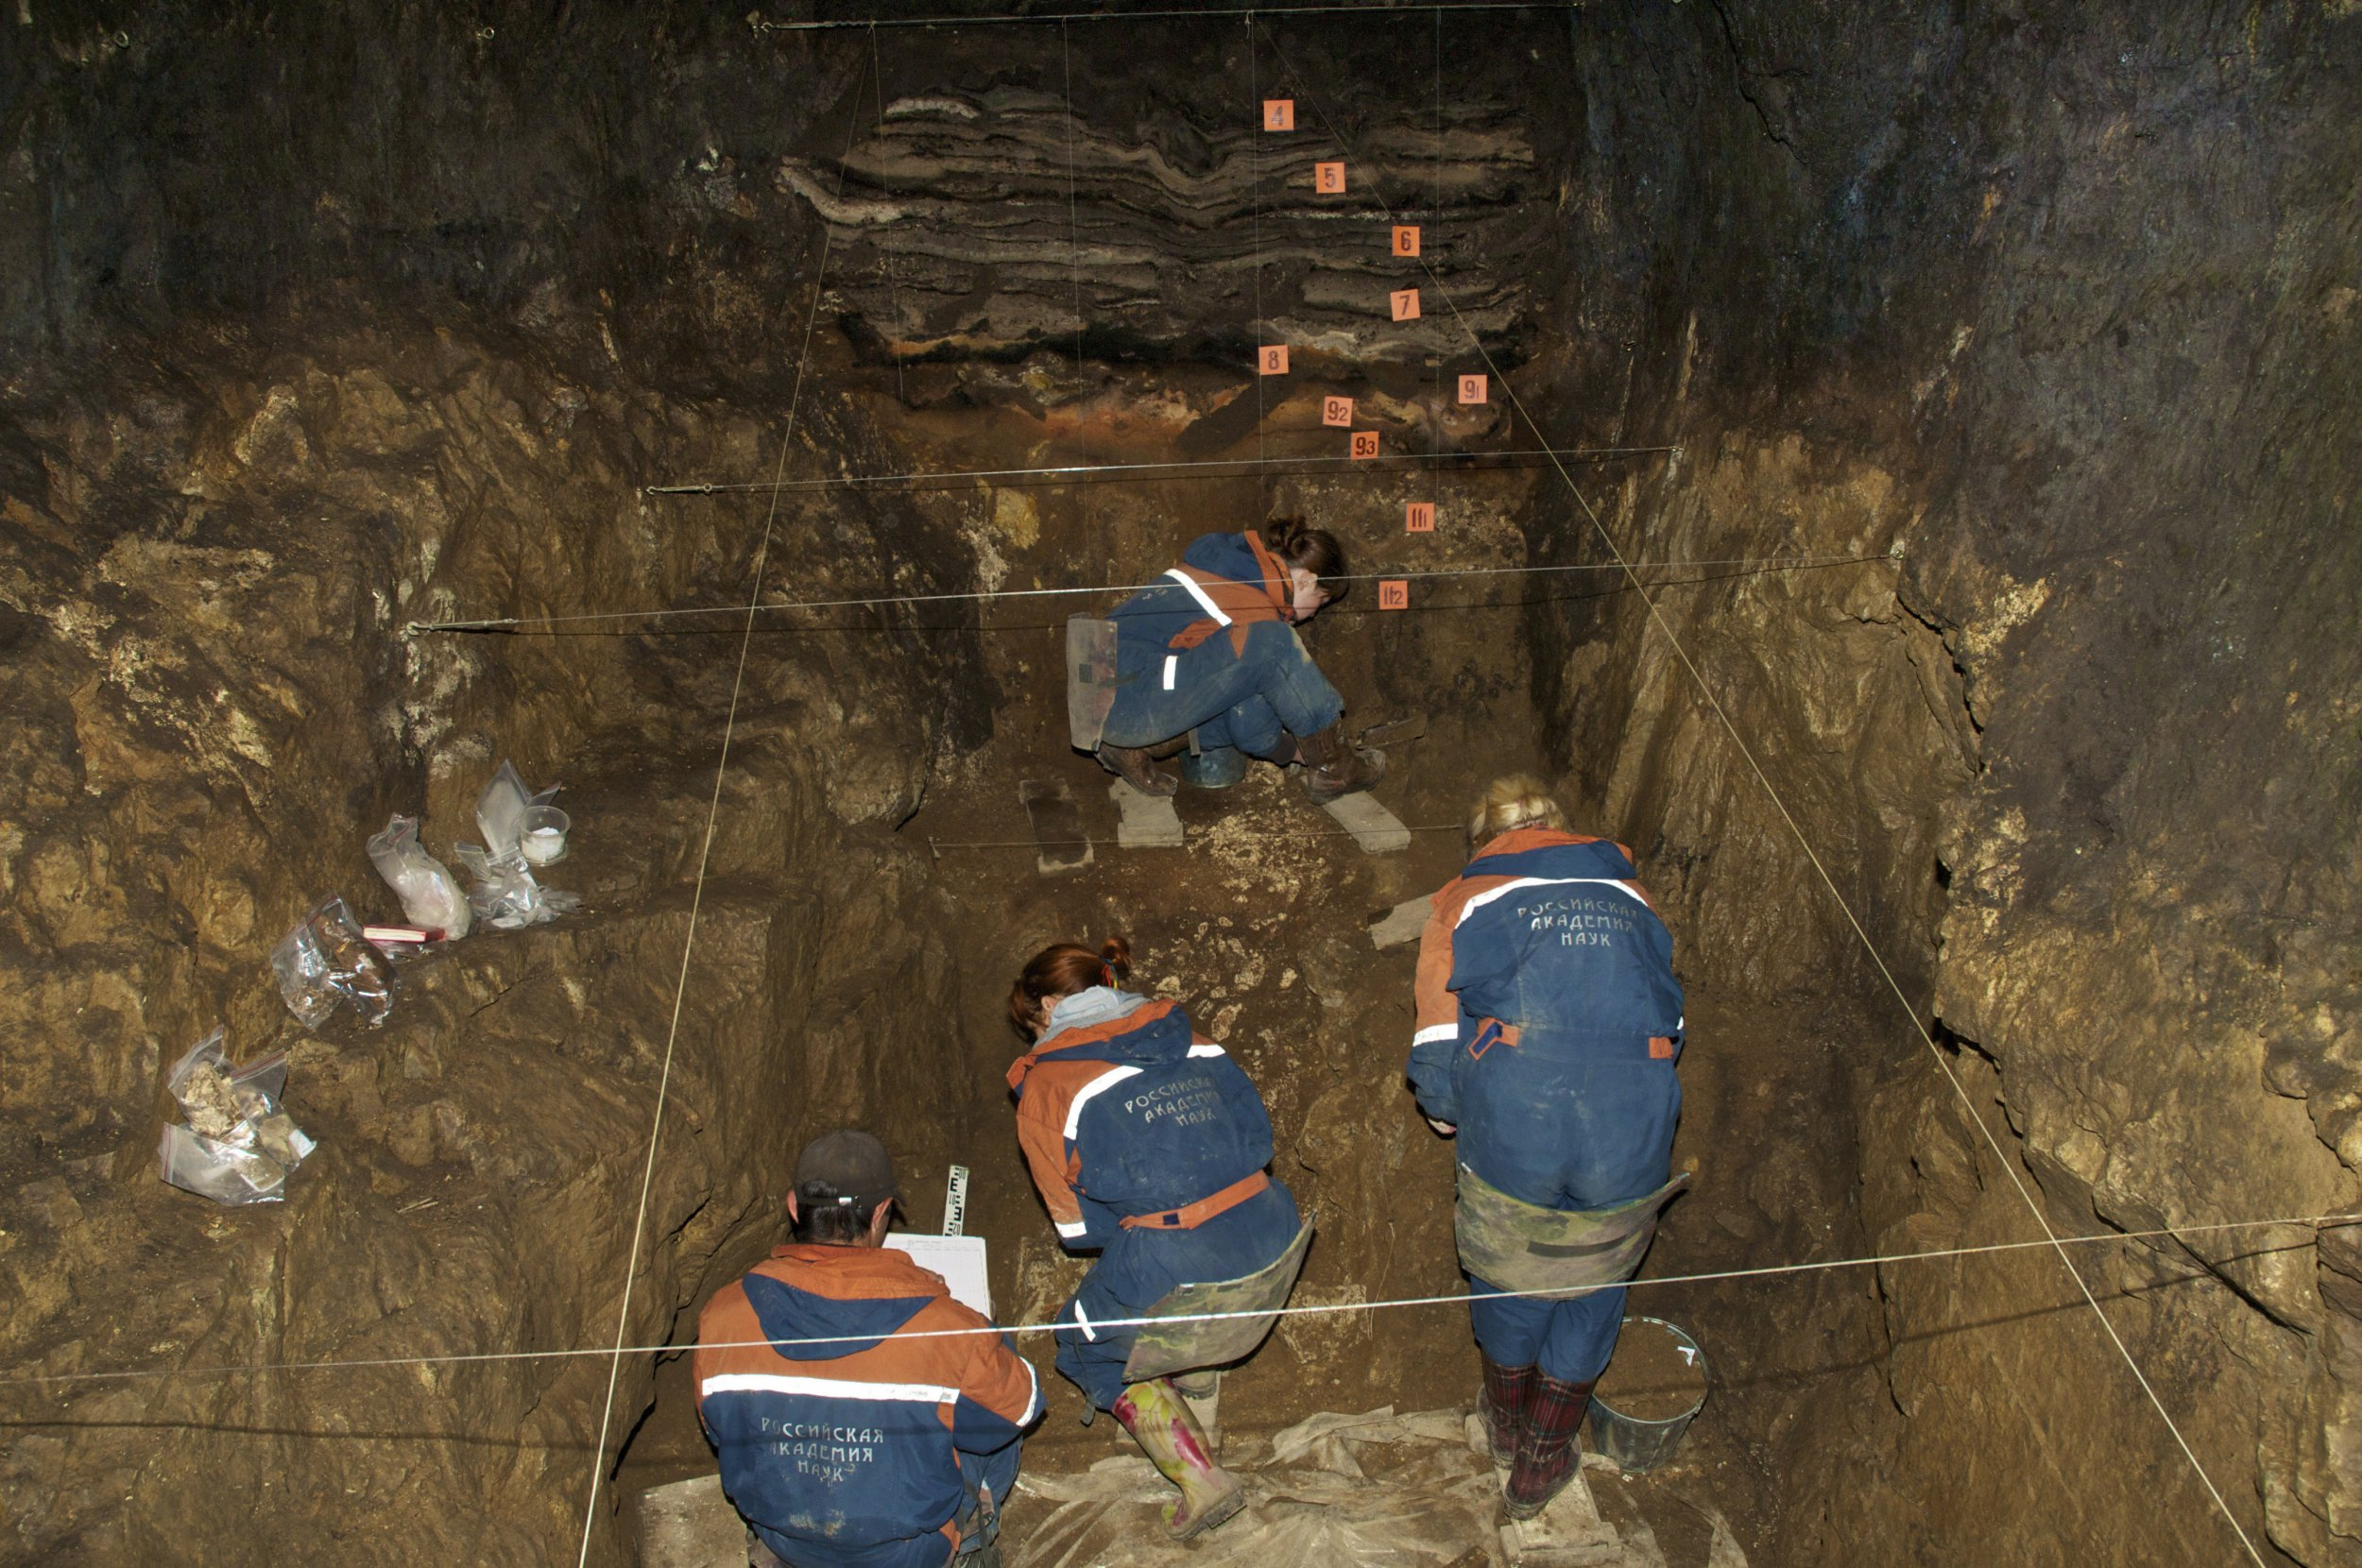 In this 2011 photo provided by Bence Viola of the University of Toronto, researchers excavate a cave for Denisovan fossils in the Altai Krai area of Russia. On Wednesday, Aug. 22, 2018, scientists reported in the journal Nature that they have found the remains of an ancient female whose mother was a Neanderthal and whose father belonged to another extinct group of human relatives known as Denisovans. (Bence Viola/Department of Anthropology - University of Toronto/Max Planck Institute for Evolutionary Anthropology via AP)